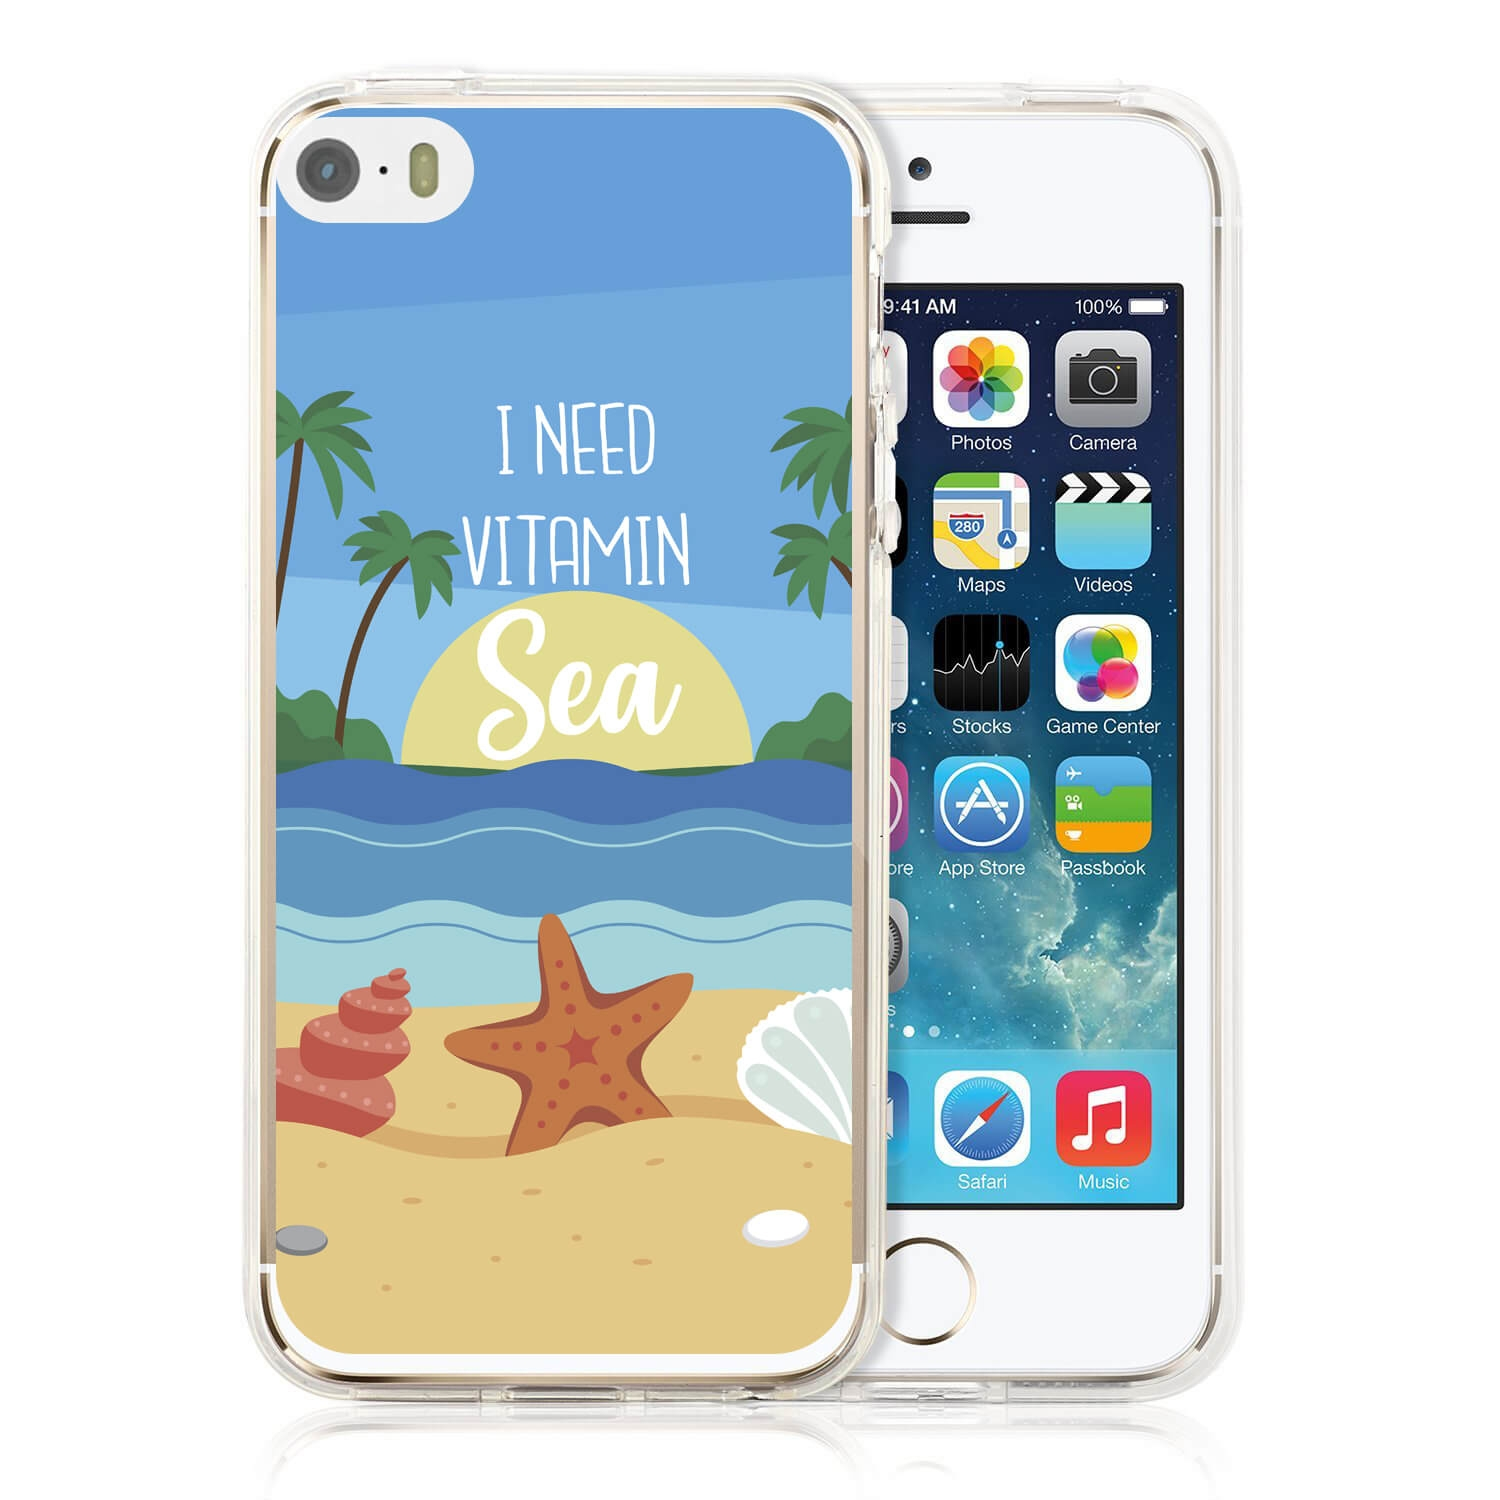 MY ART kryt Apple iPhone 5 / 5S / SE VITAMIN SEA (033)